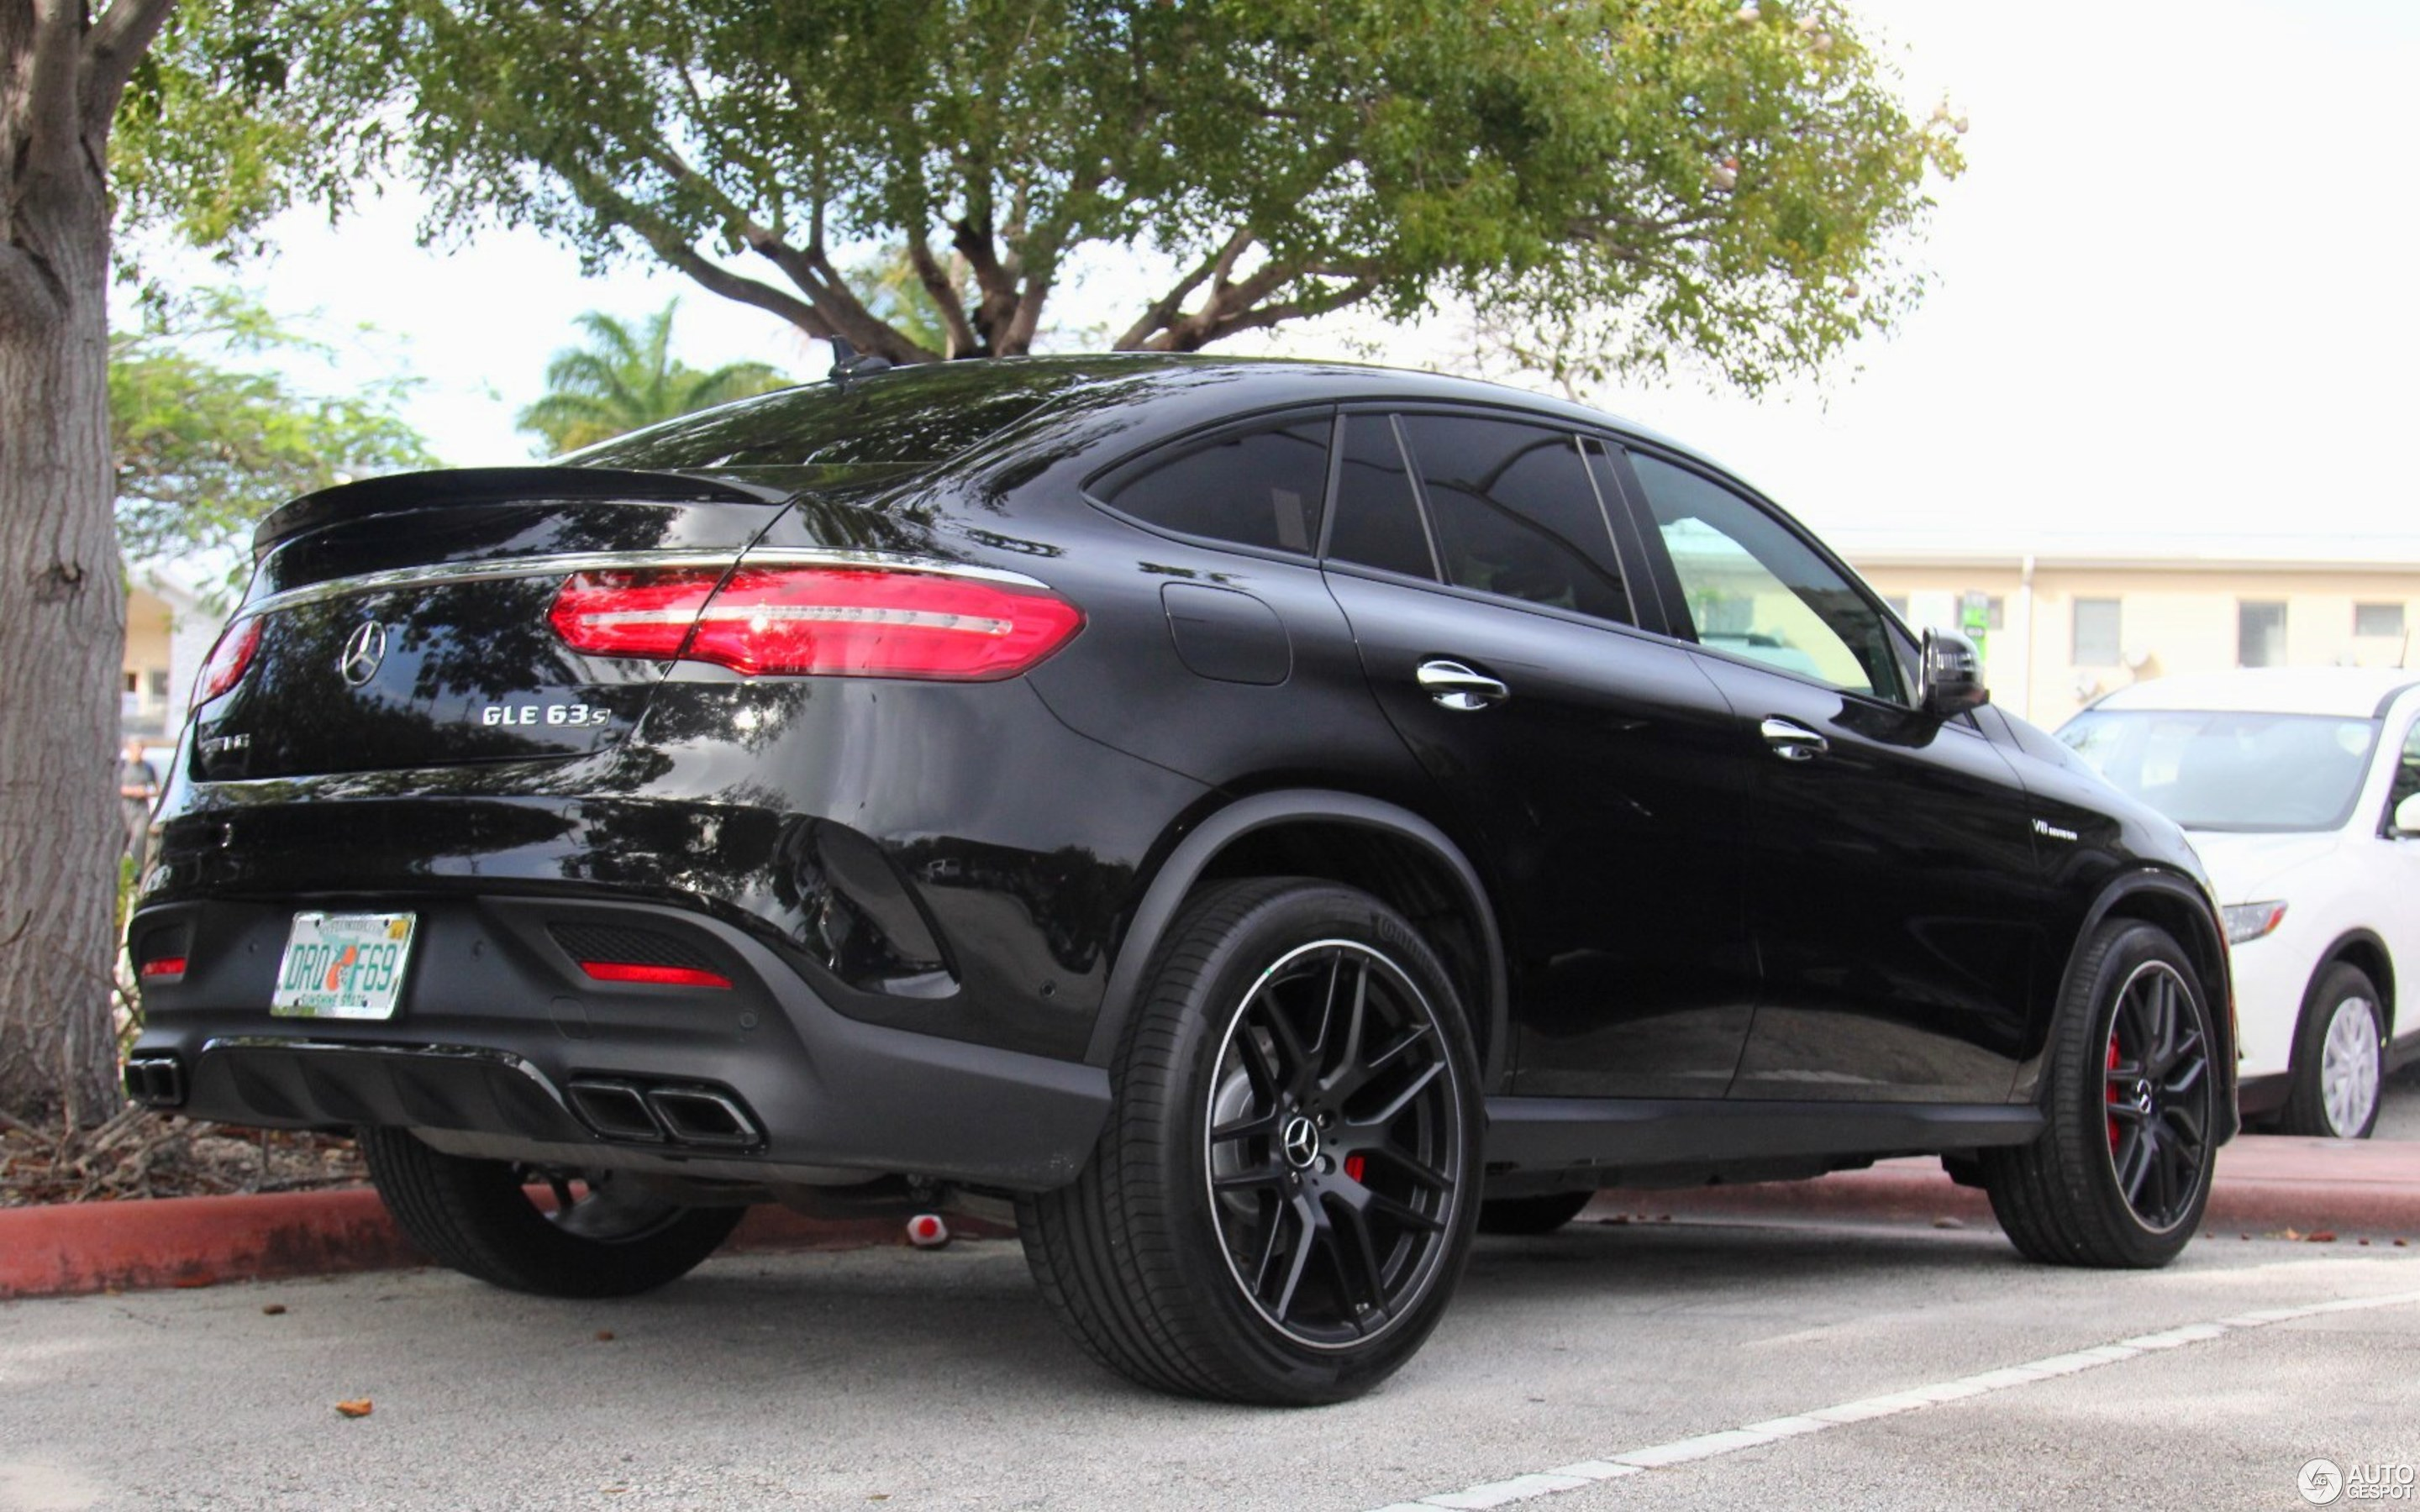 Amg Gle 63 >> Mercedes Amg Gle 63 S Coupe 16 January 2016 Autogespot